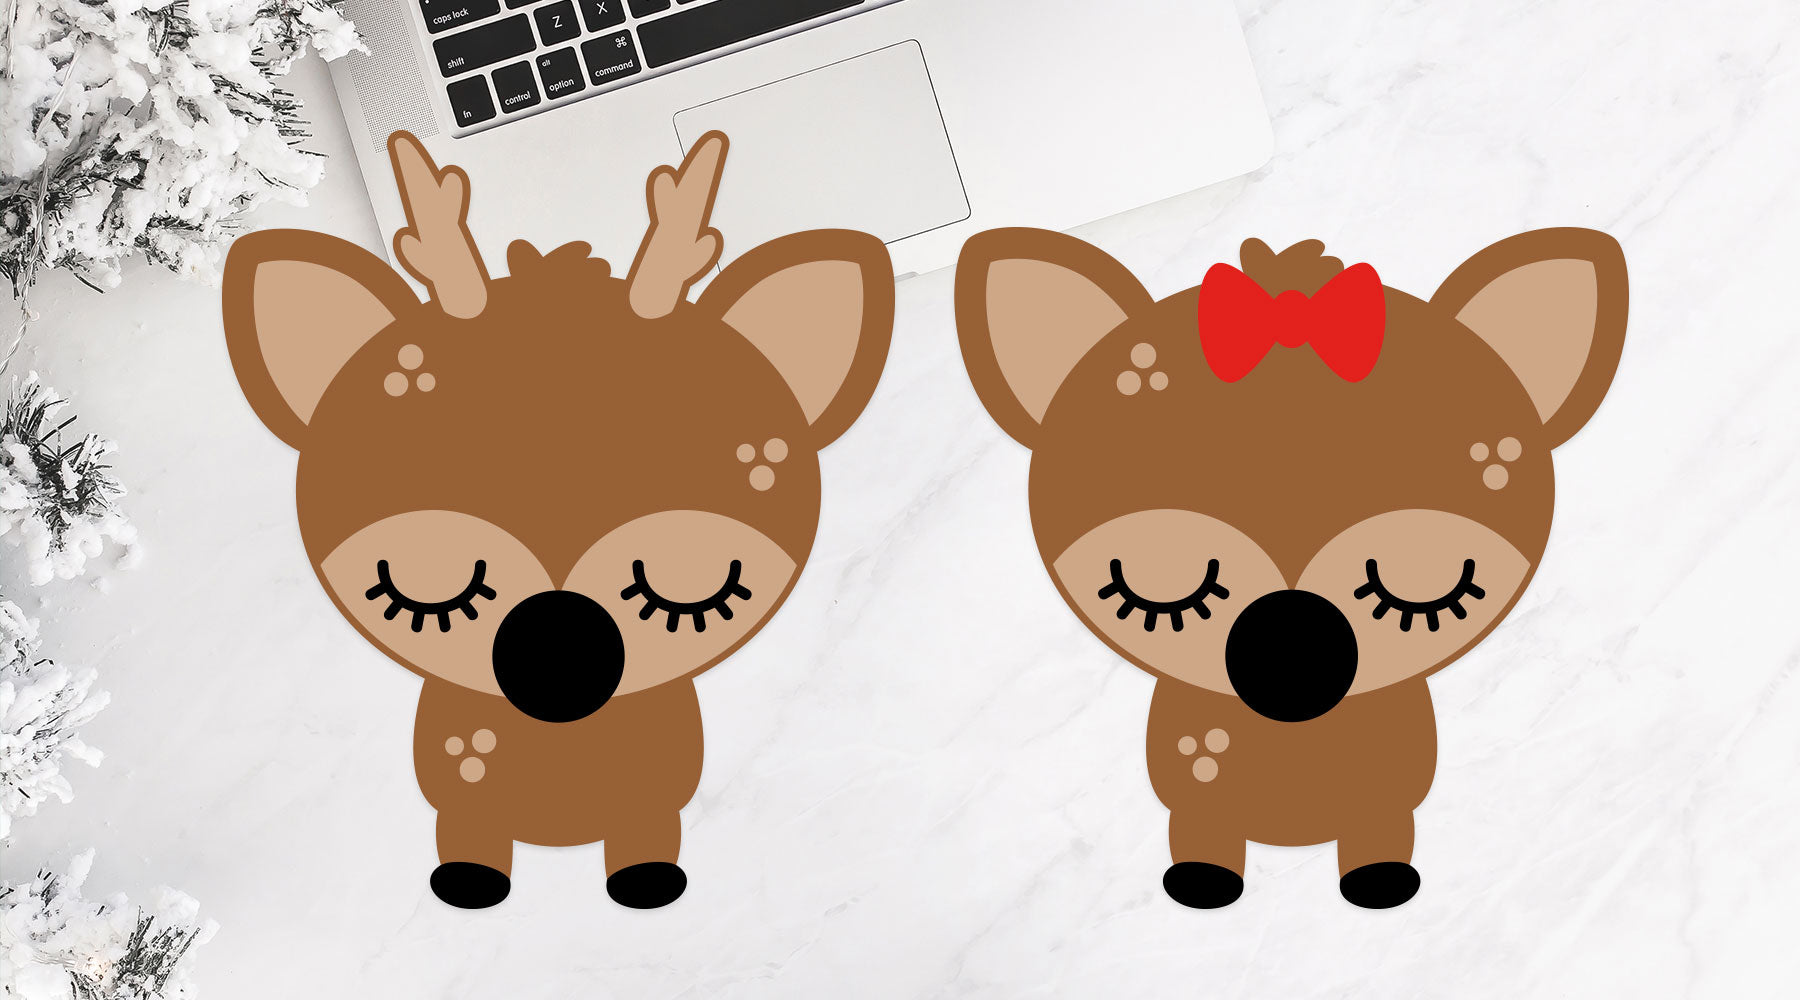 Cute Woodland Reindeer for Children's Winter Shirts and Decor | SVG DXF EPS PNG Cut Files | Free for Personal Use